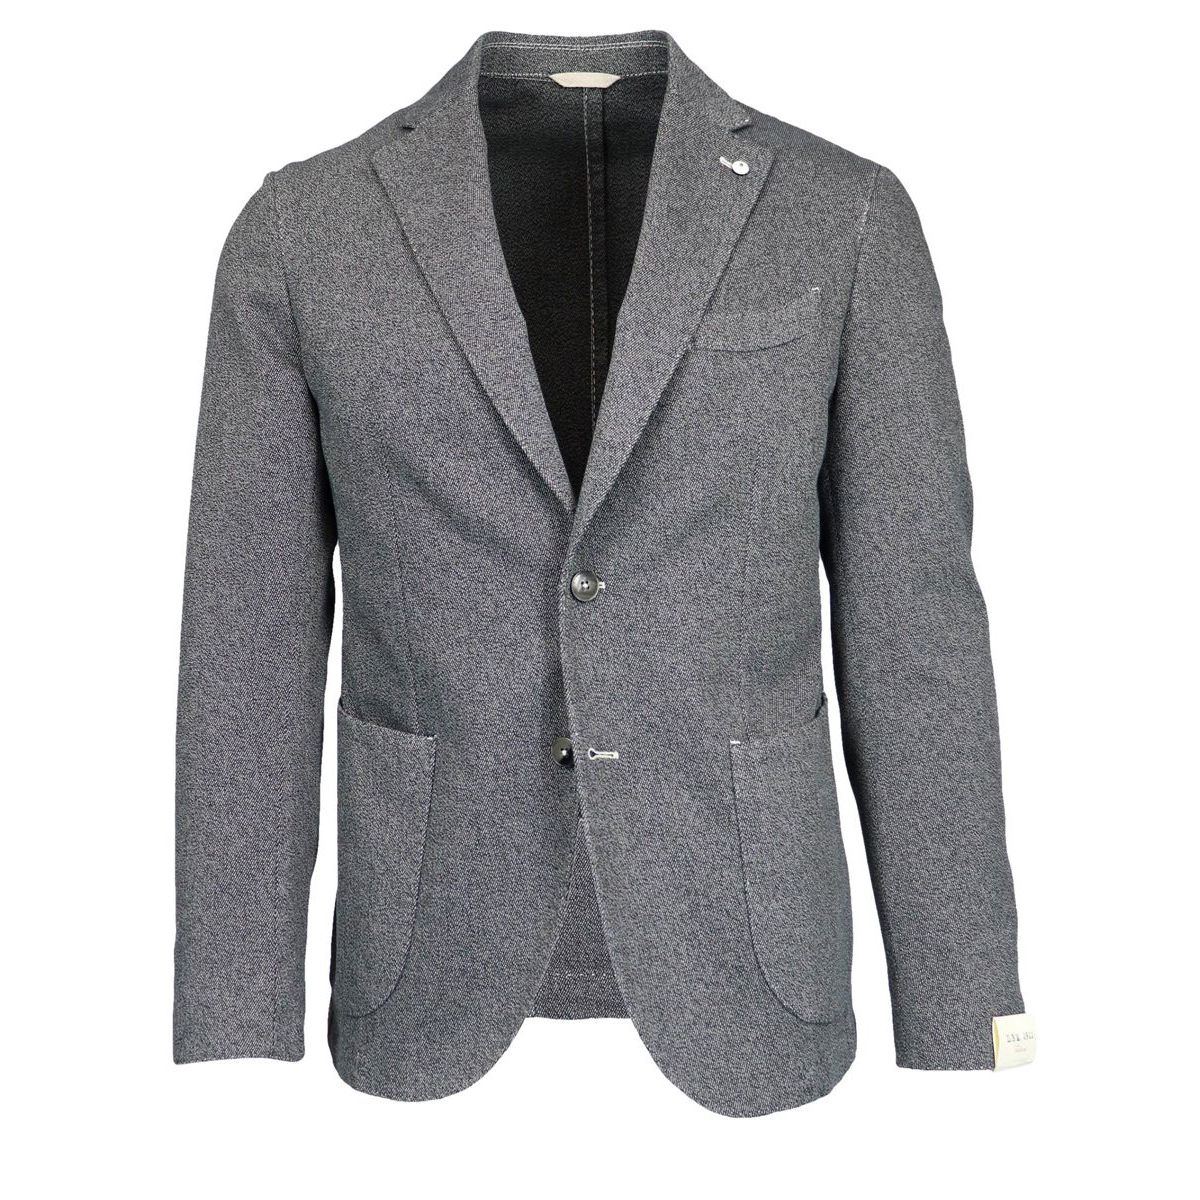 Unlined jacket in textured cotton Grey L.B.M. 1911